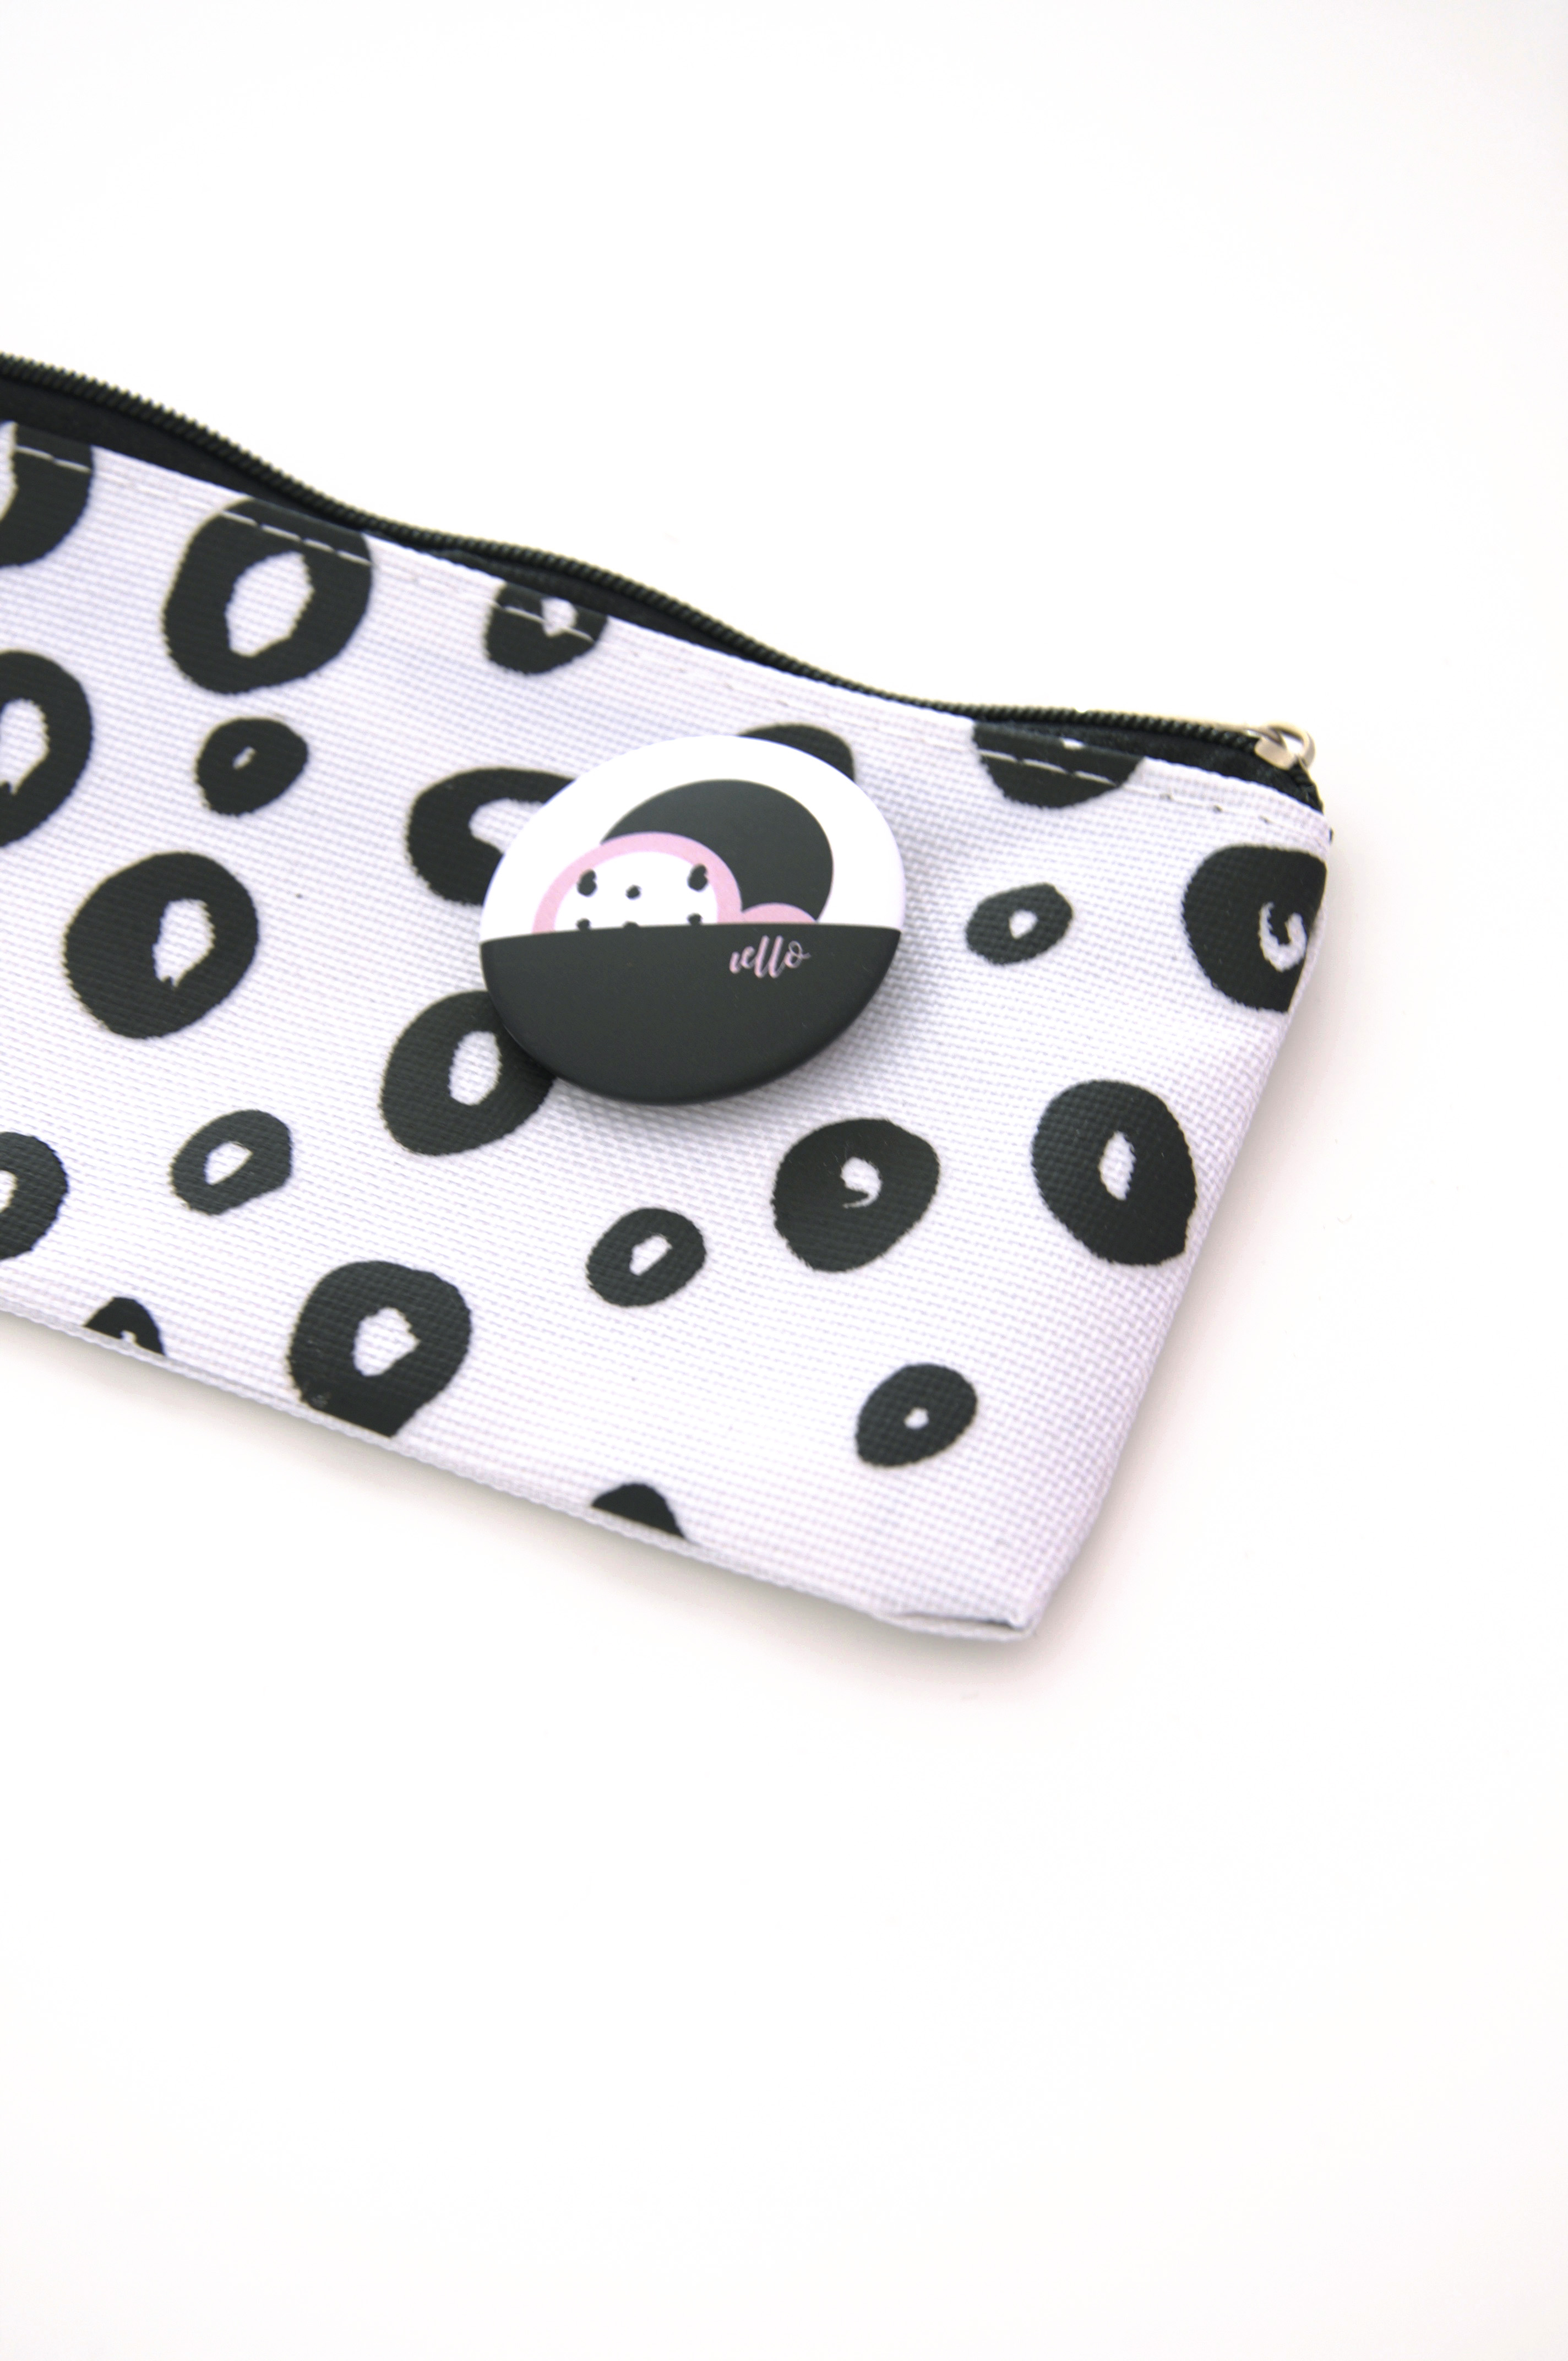 White pencil case with pin